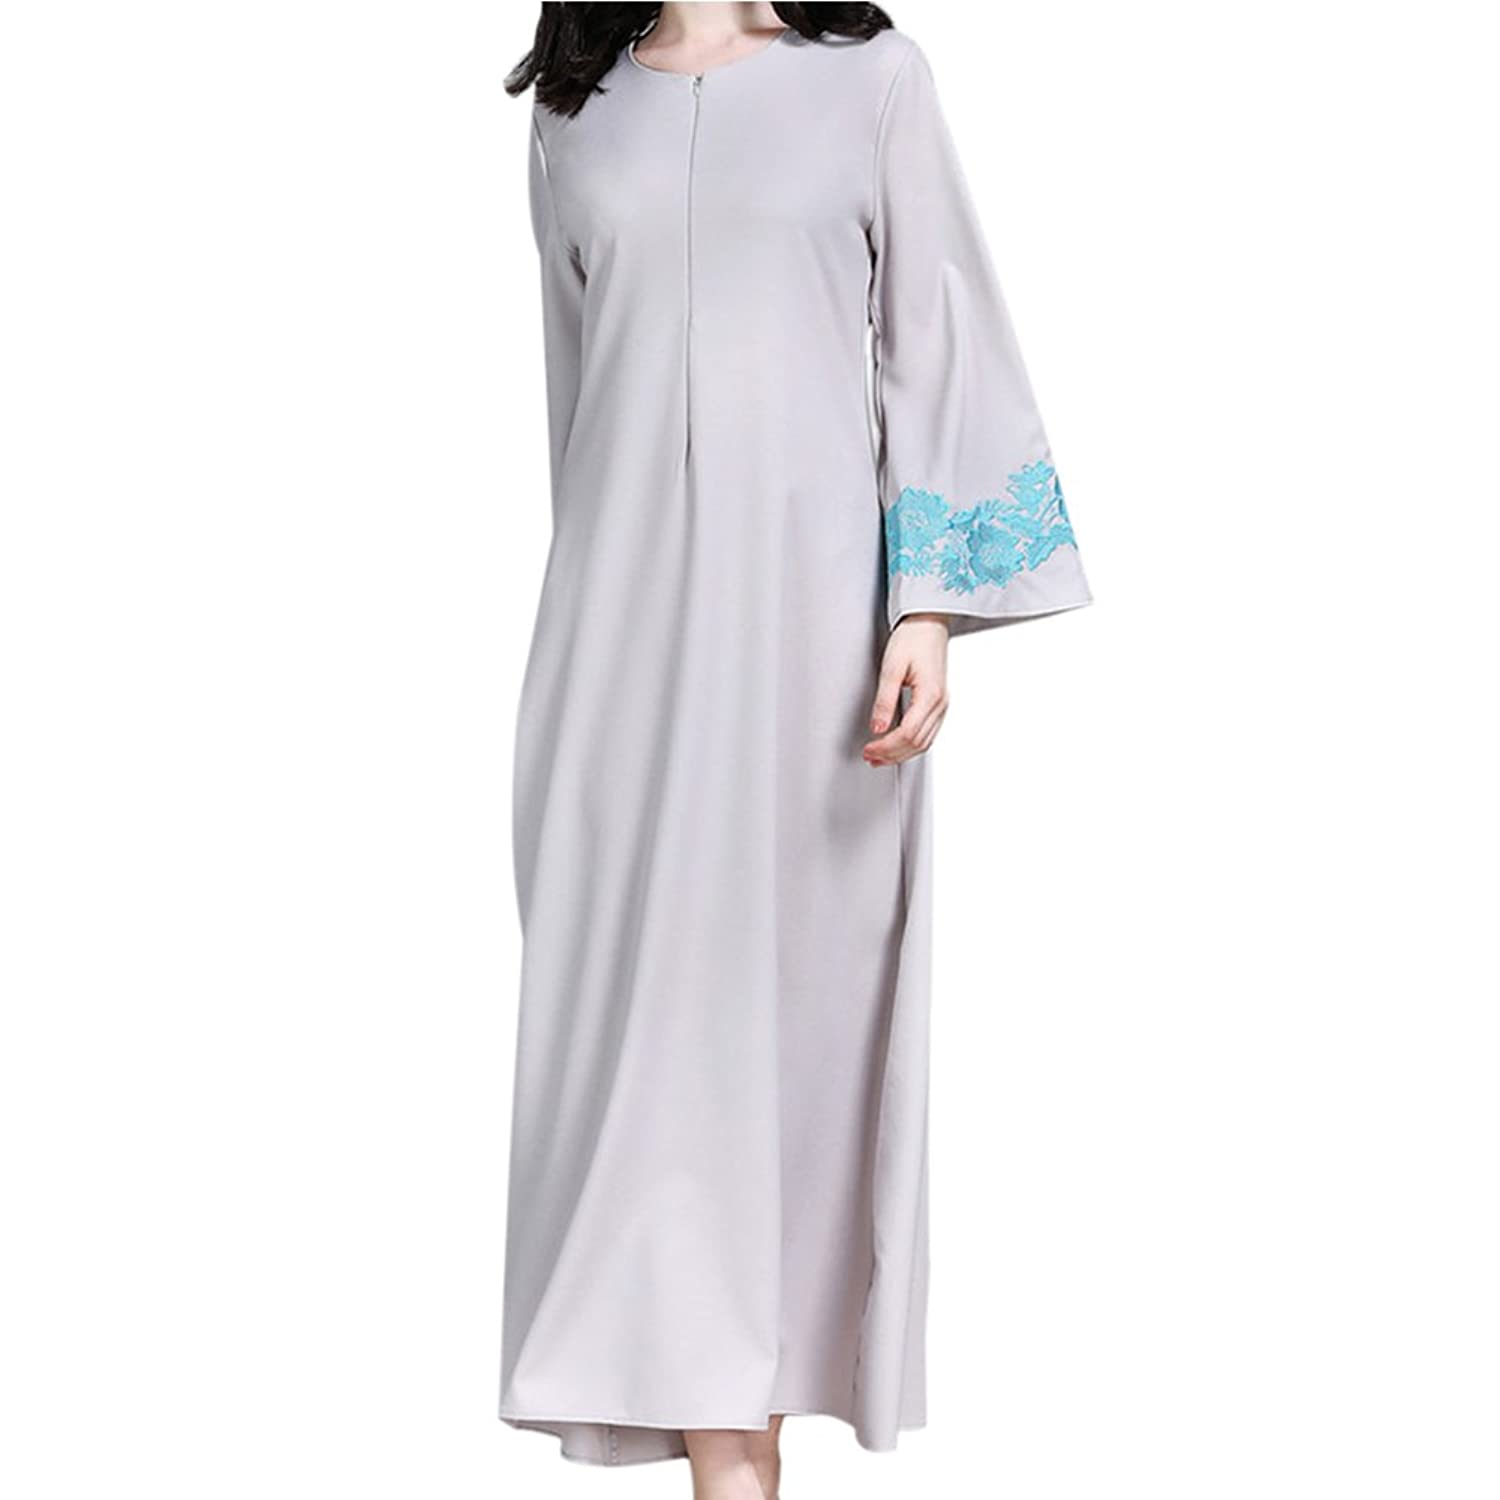 Meijunter Women Muslim Islamic Embroidery Long Sleeve Maxi Dress with Pocket Middle East Dubai Ethnic Robe Malaysia Cocktail Abaya Arabic Church Prayer ...